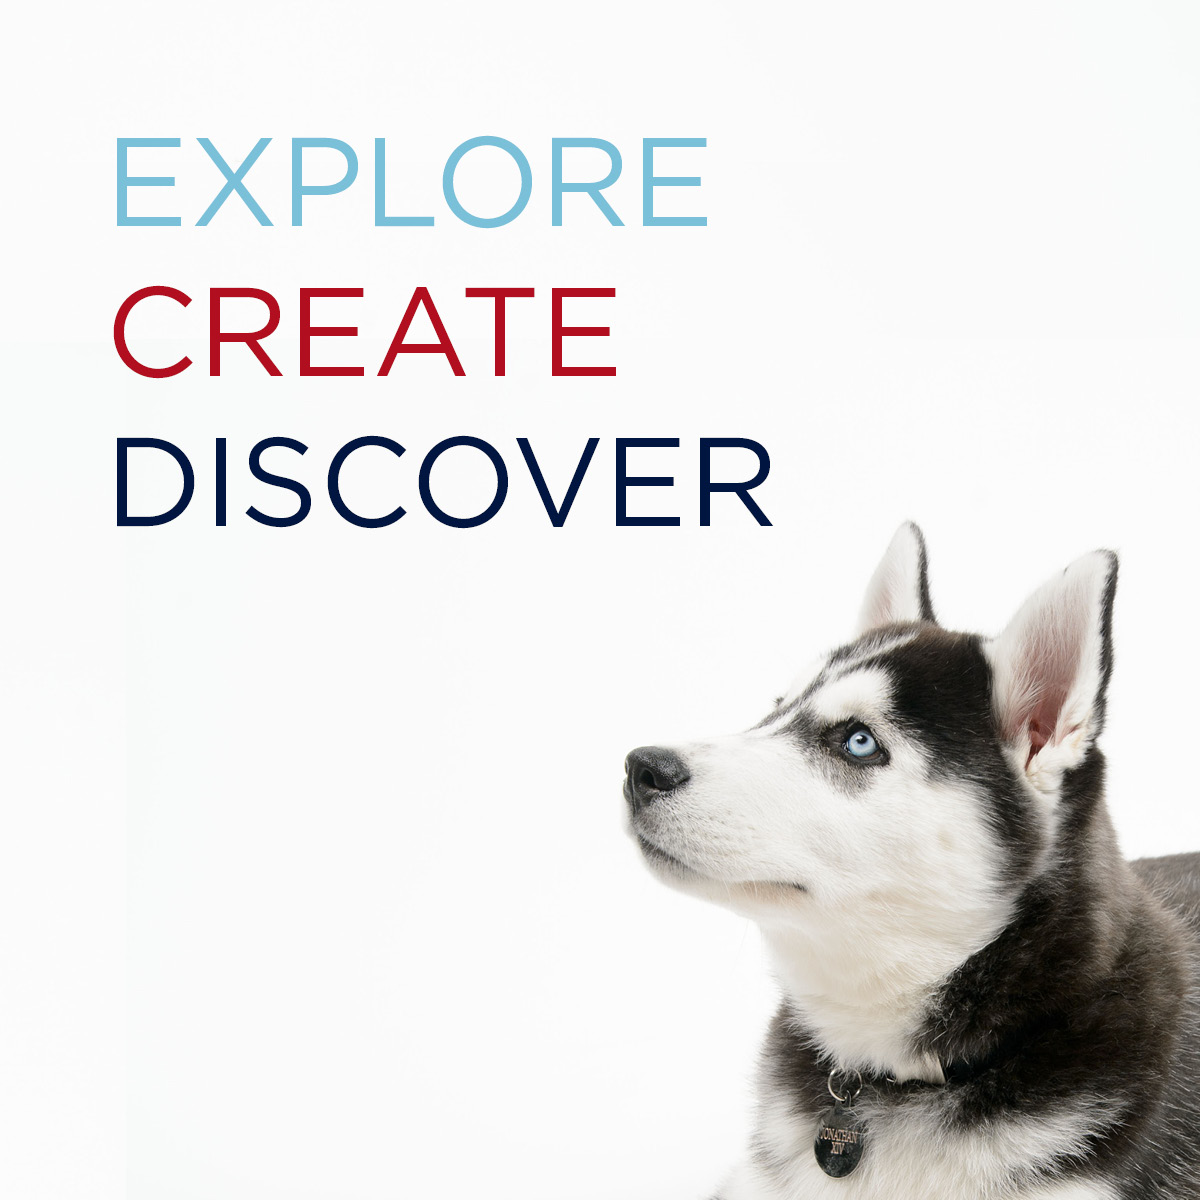 Explore. Create. Discover. Learn about undergraduate research!